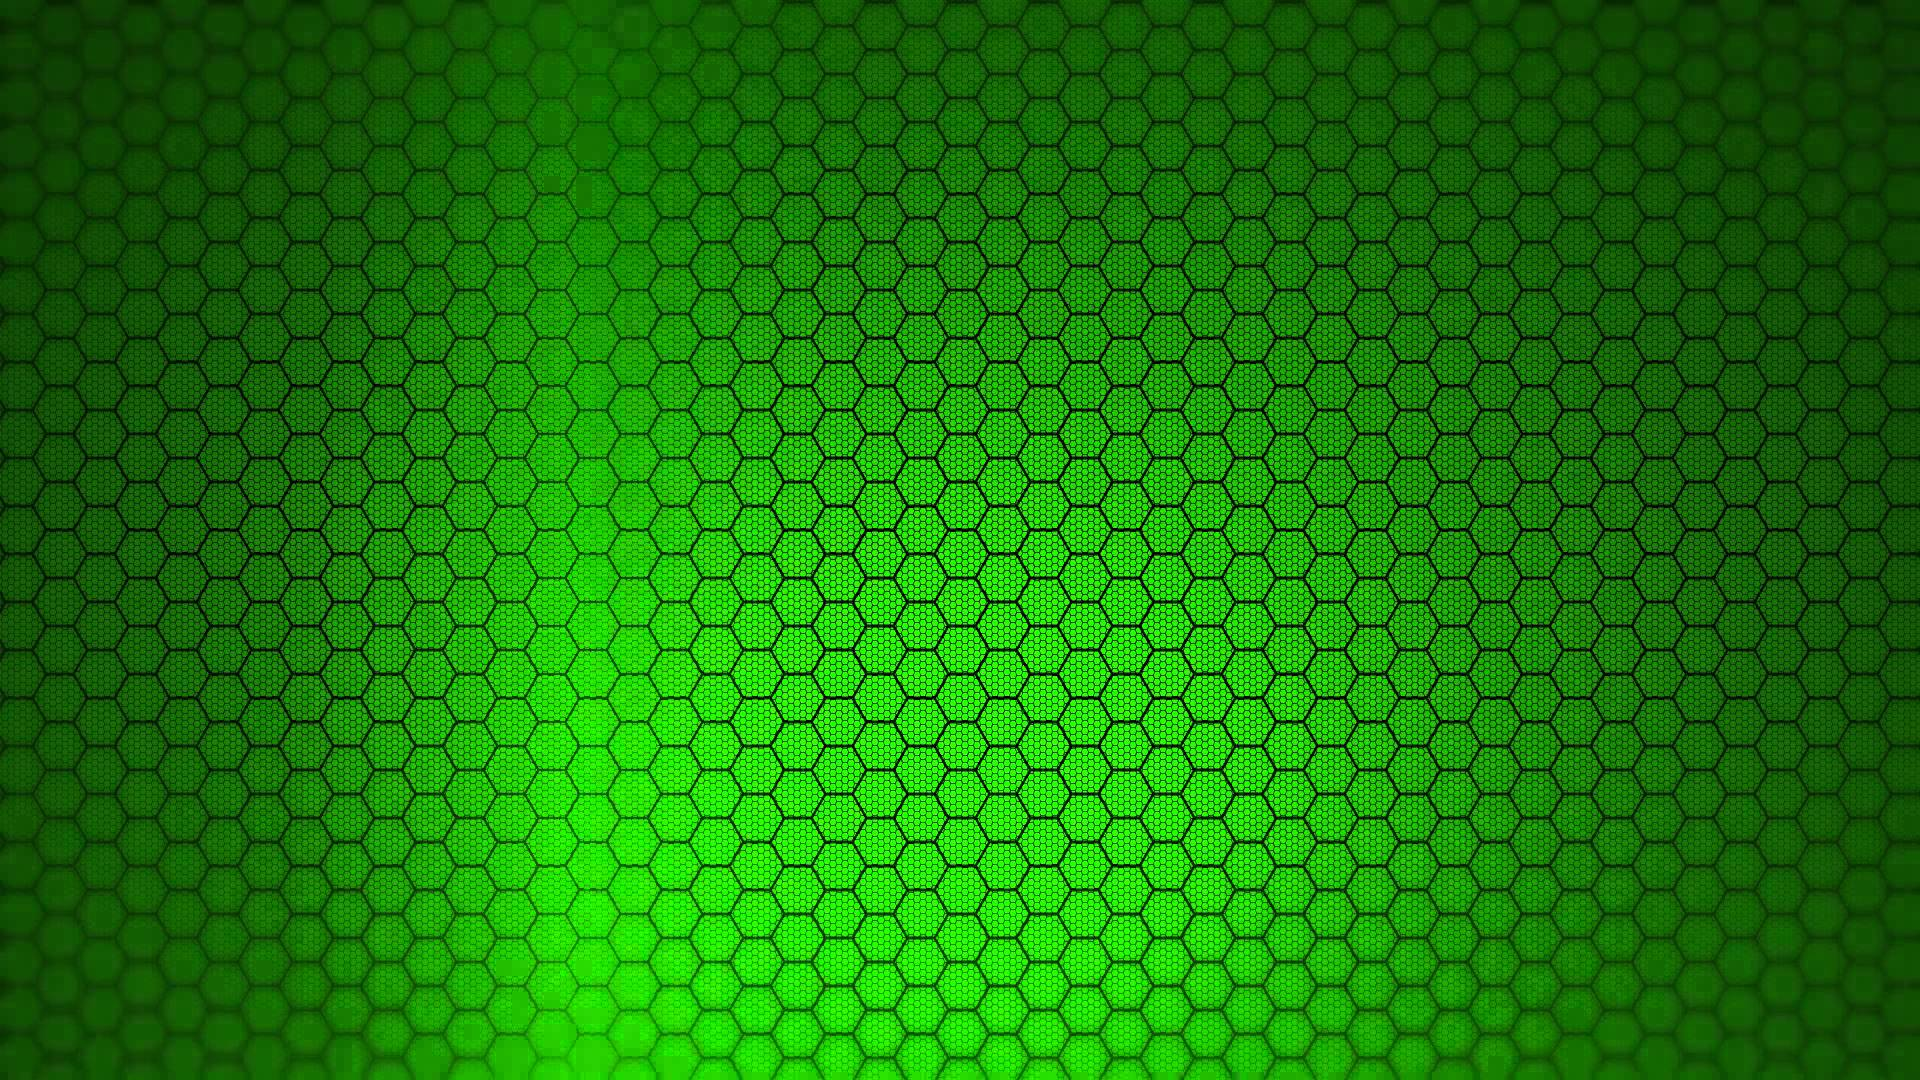 Green Backgrounds Image 1920x1080